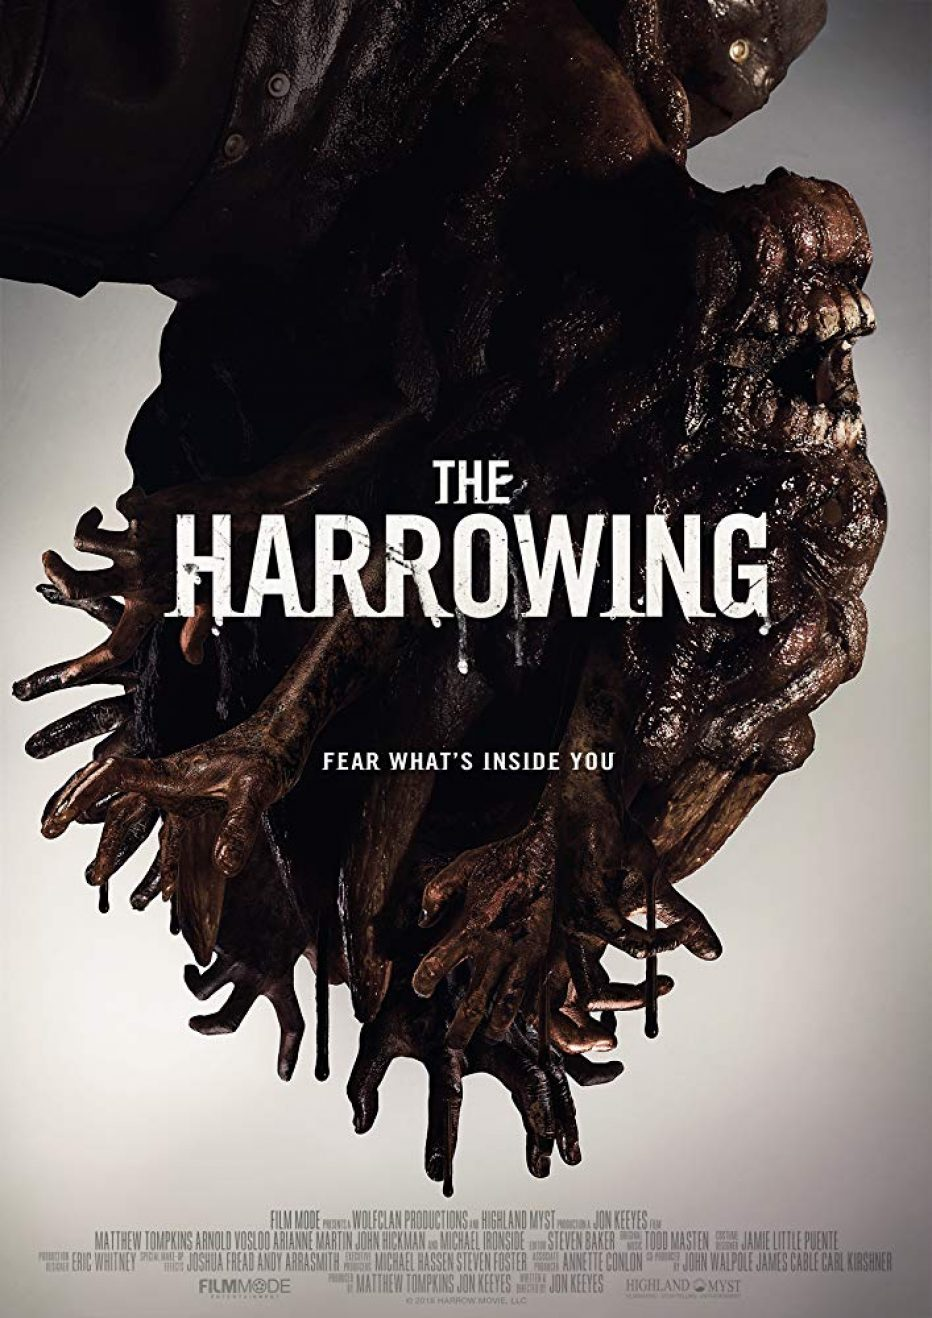 Official trailer for THE HARROWING coming Christmas Day!